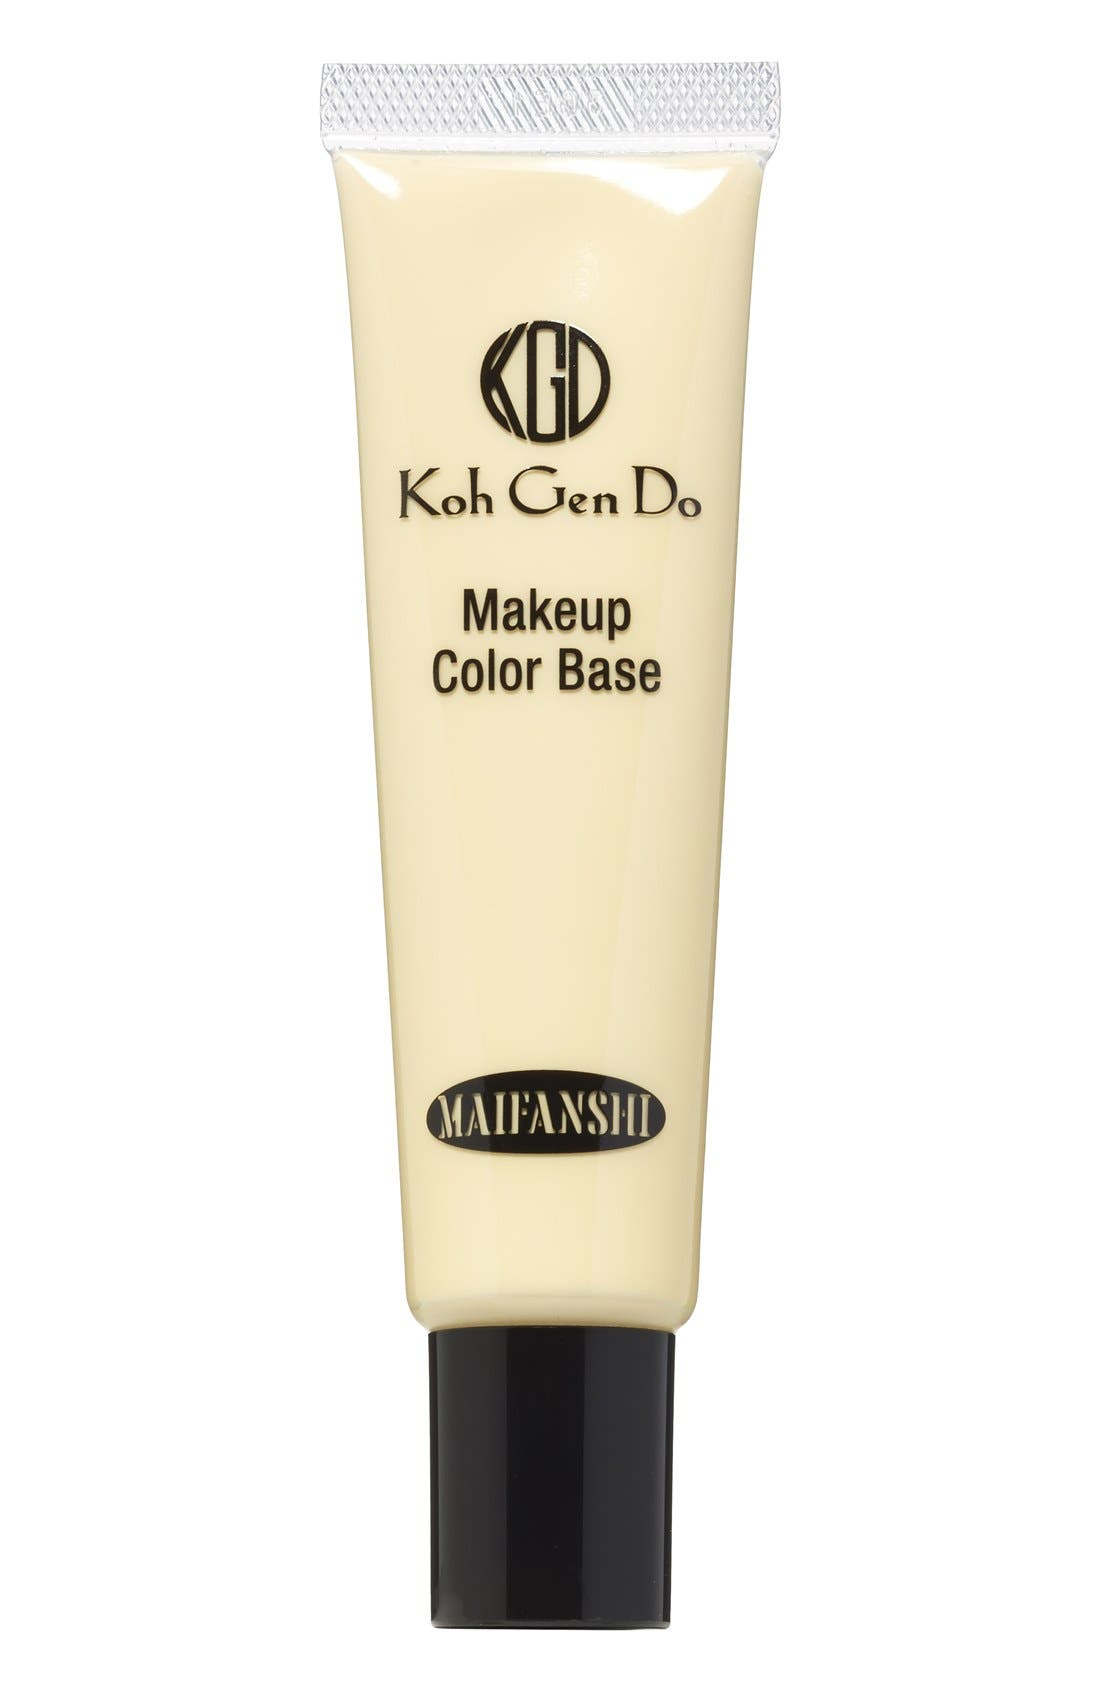 'Maifanshi - Pearl White' Makeup Color Base,                             Main thumbnail 4, color,